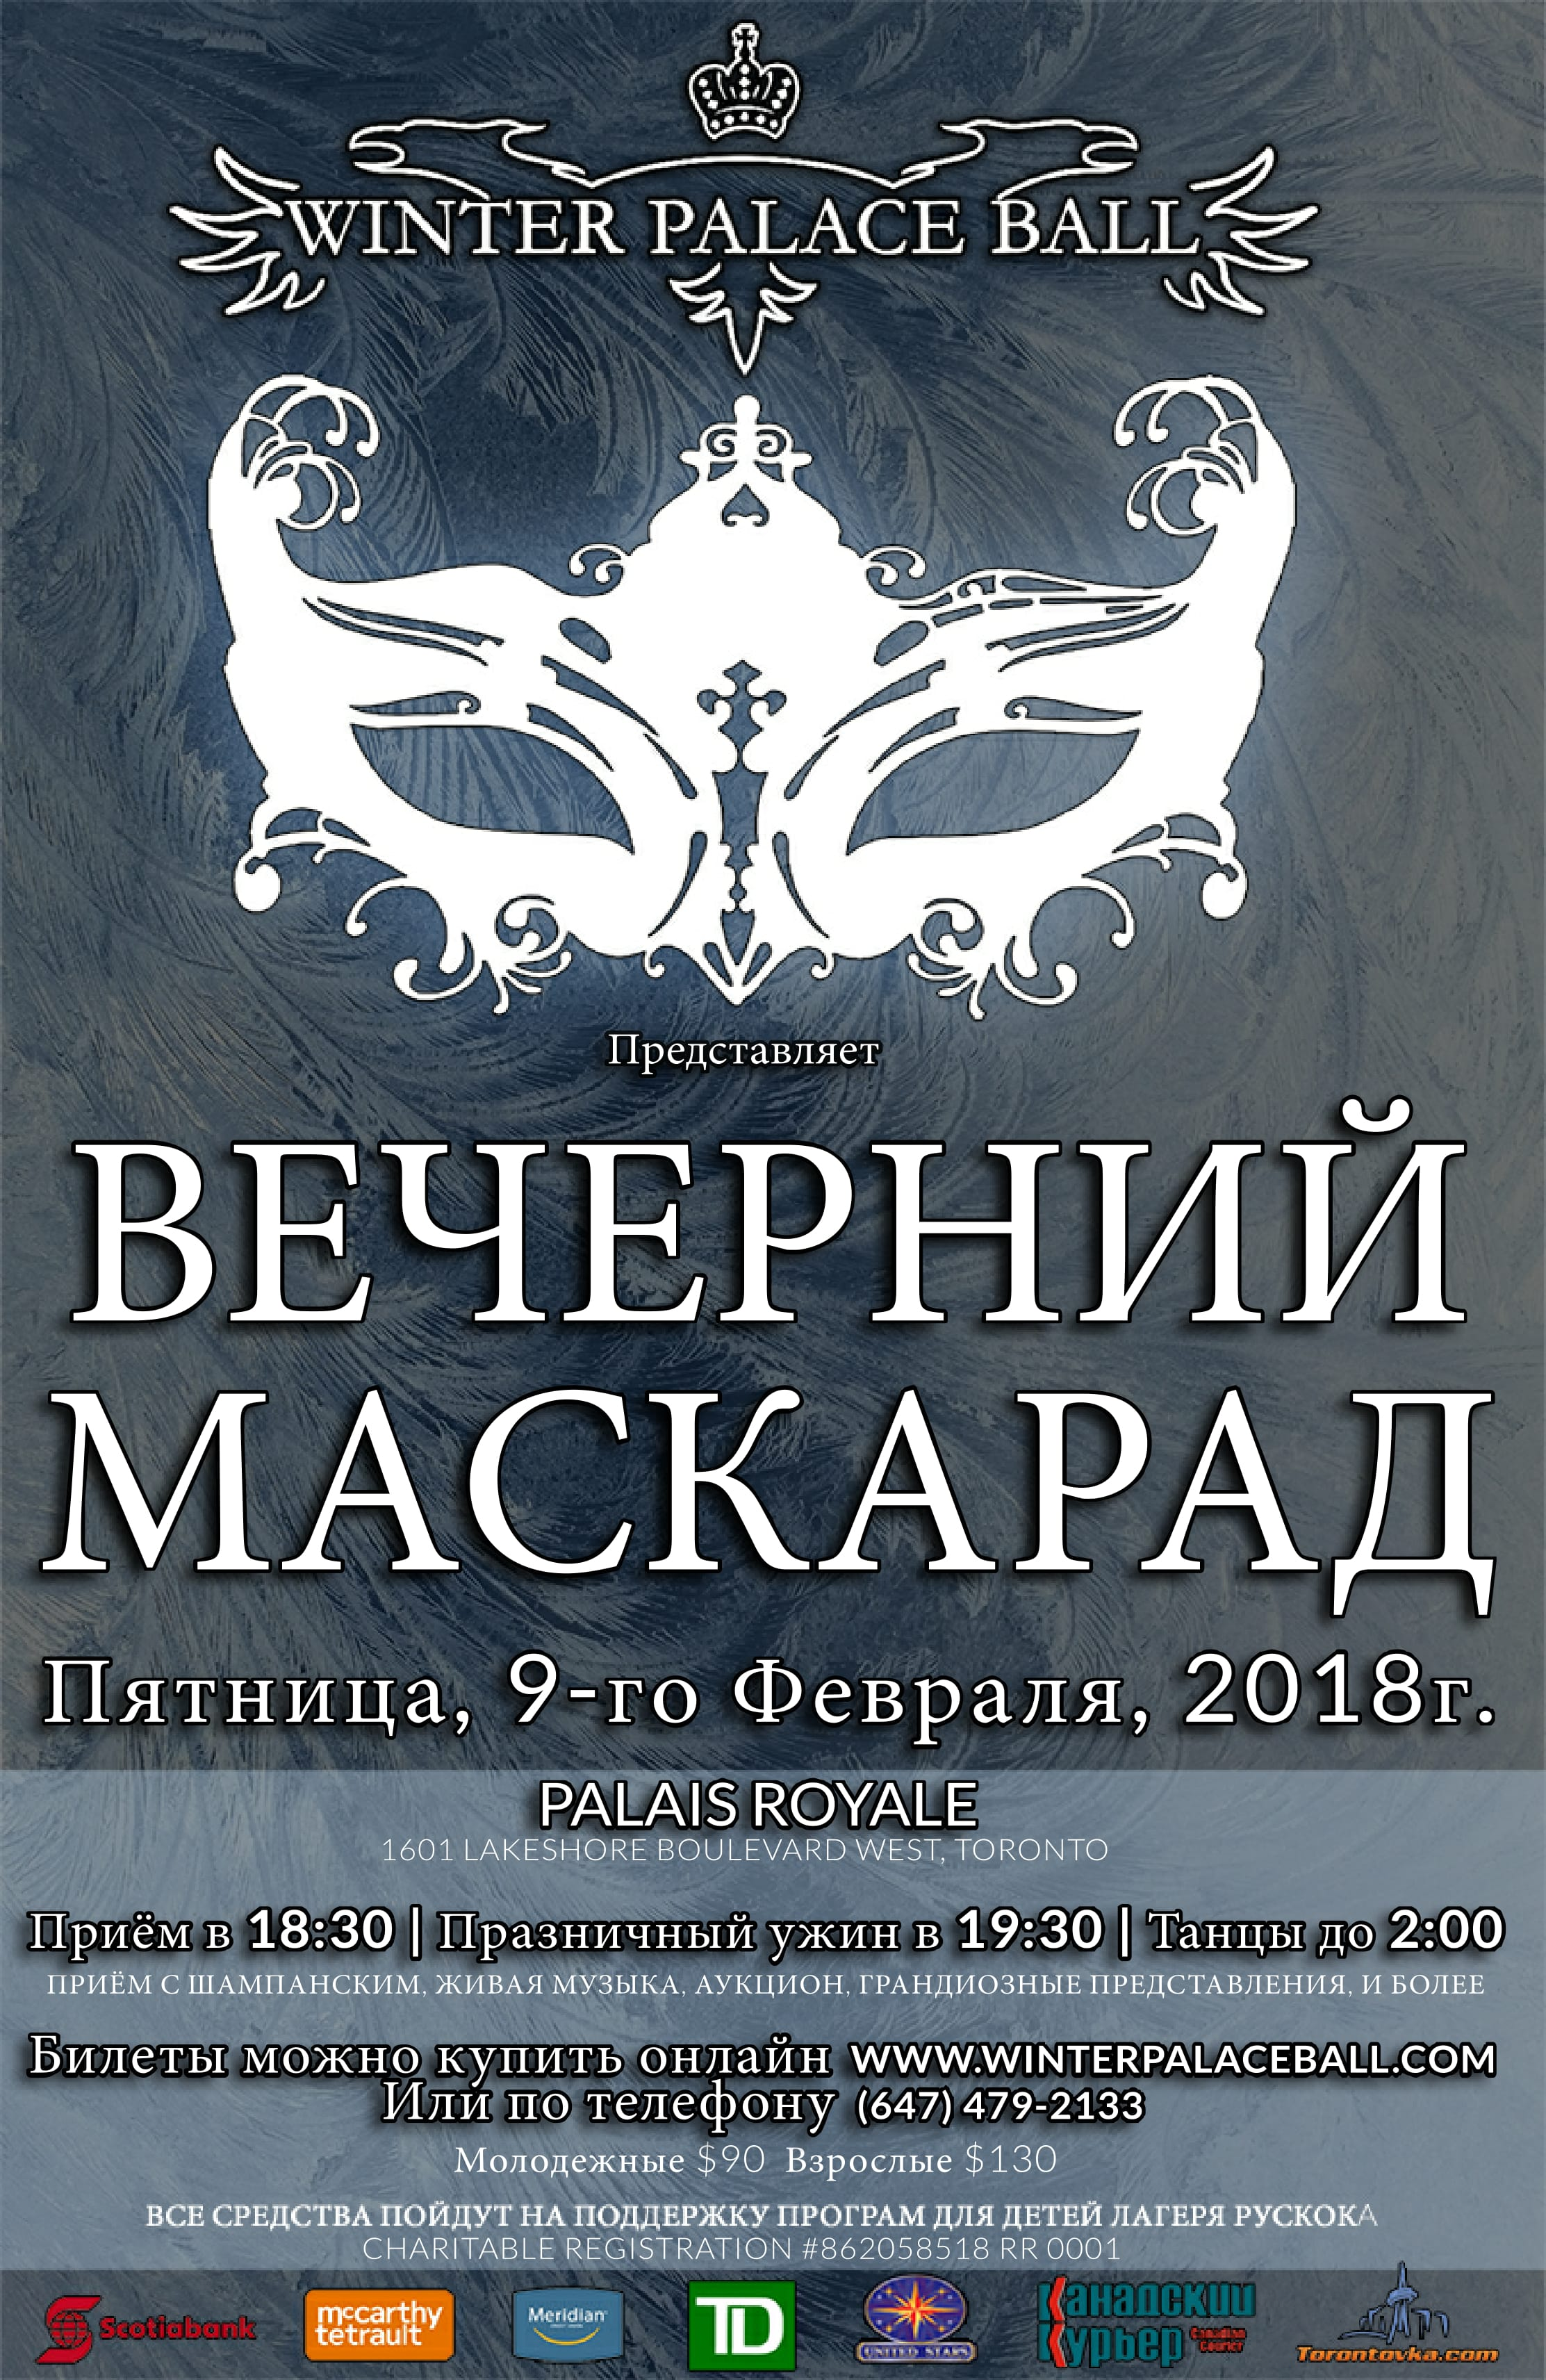 WPB Poster 2018 - 11x17 - RUS